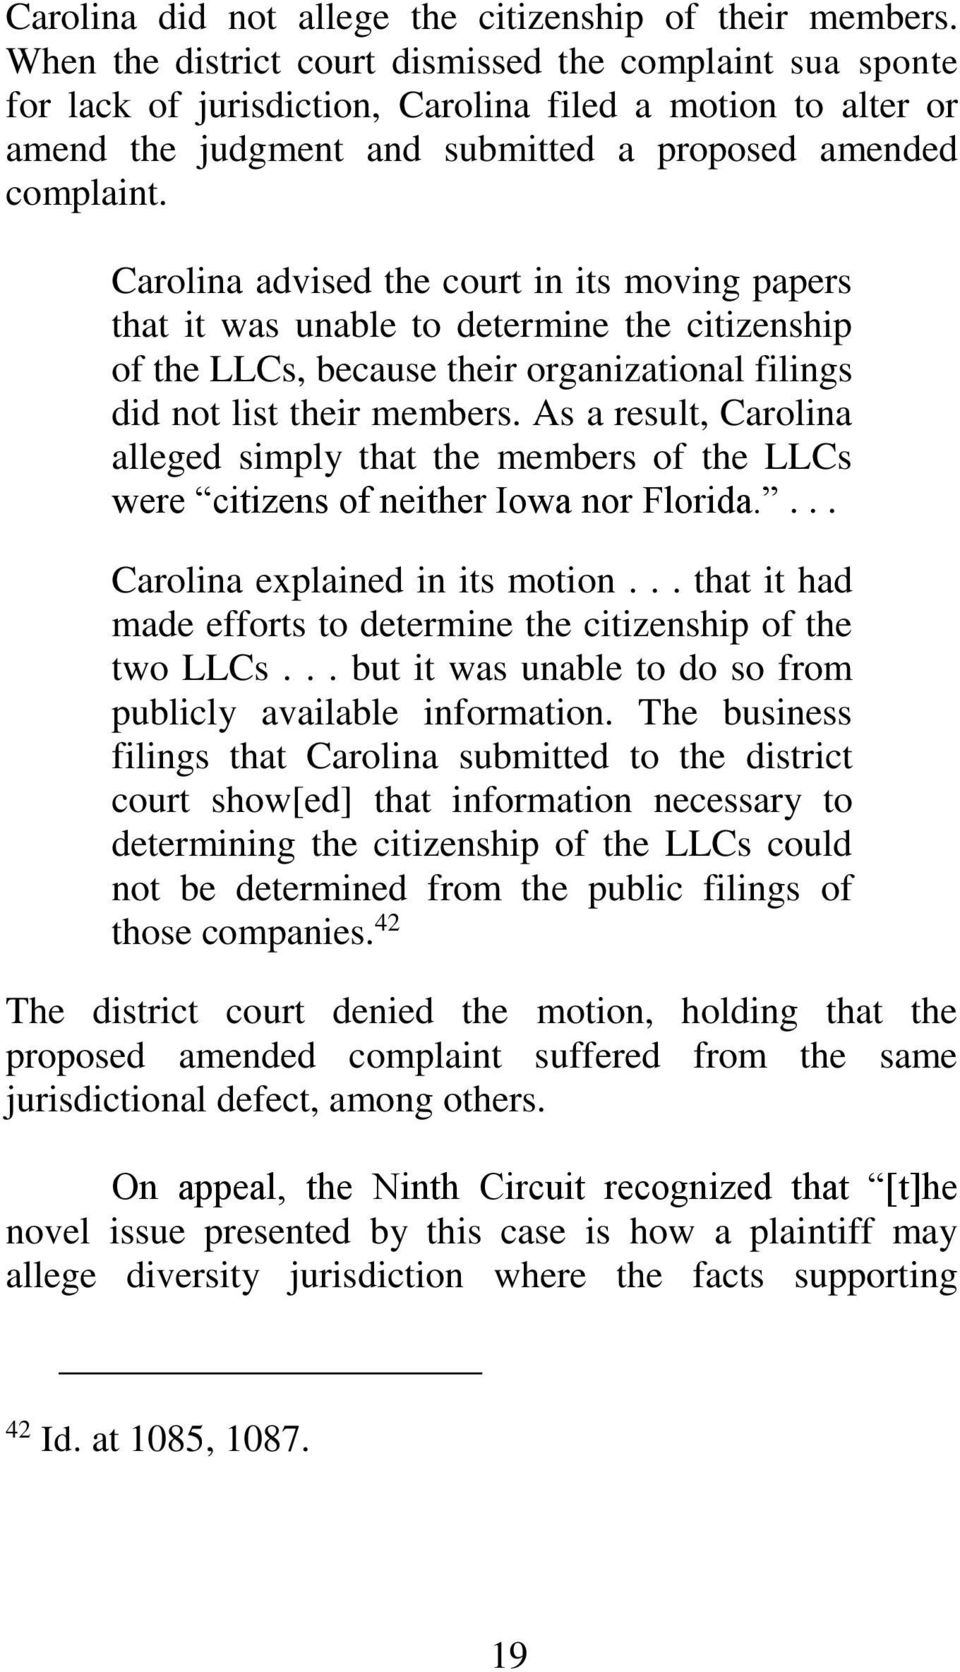 Carolina advised the court in its moving papers that it was unable to determine the citizenship of the LLCs, because their organizational filings did not list their members.